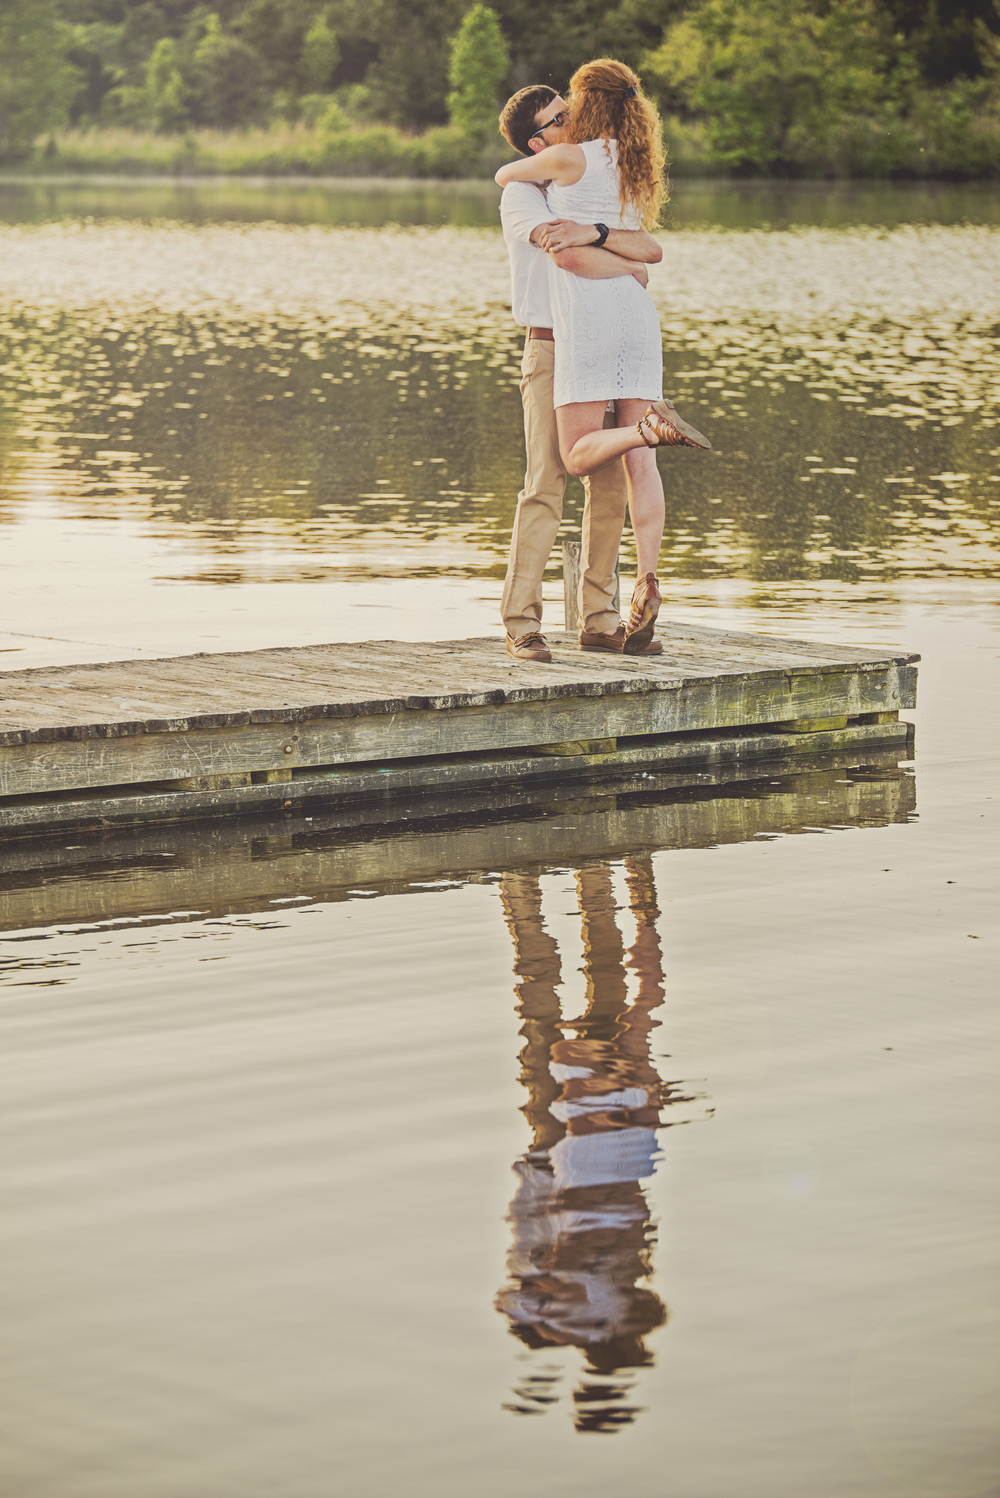 altavista_ginger_redhead_field_lake_engagement_session_small_town_lynchburg_va045.jpg